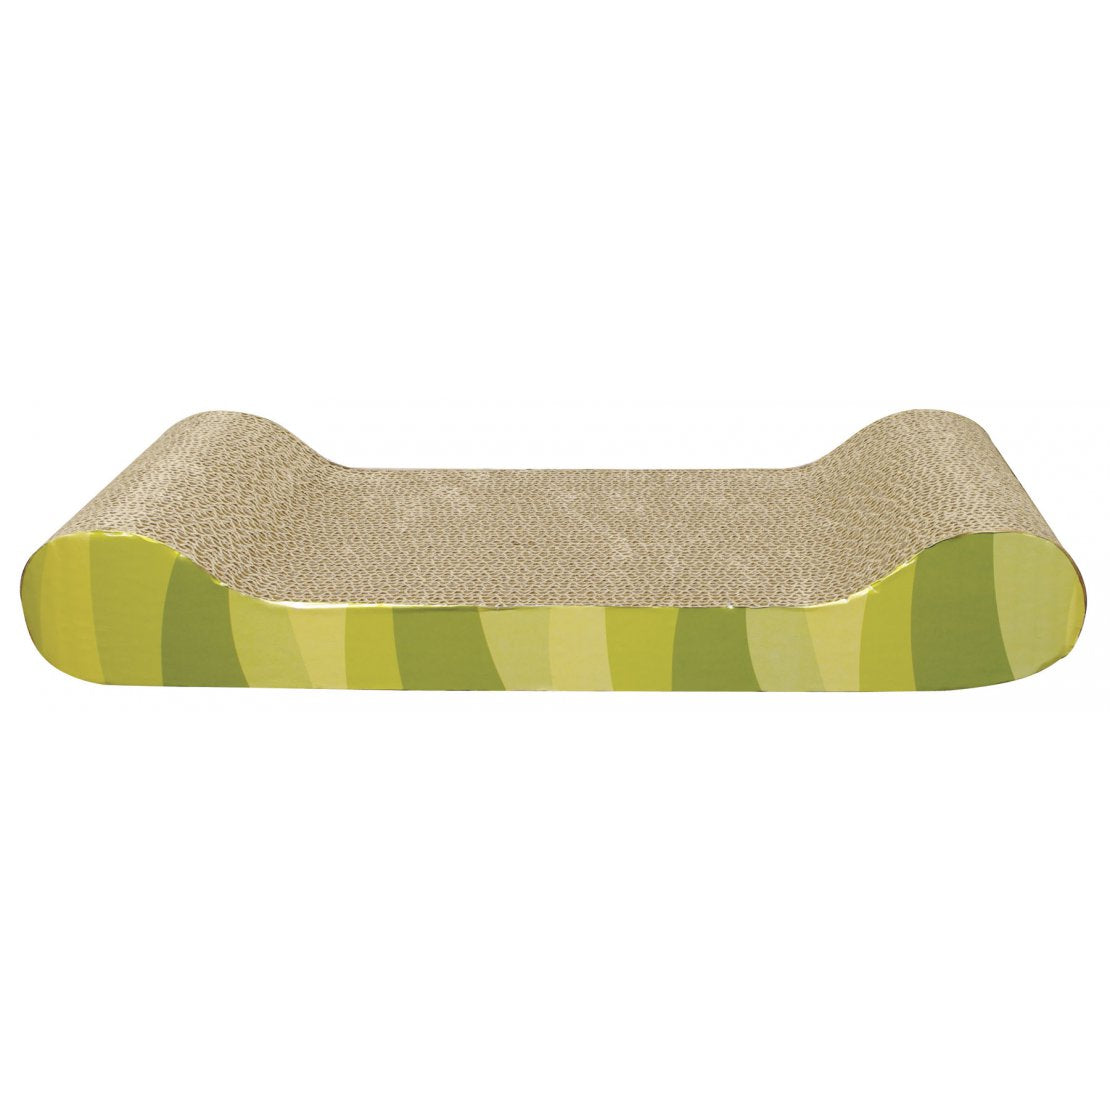 Catit Patterned Scratching Board With Catnip Lounge Design - Pica's Pets